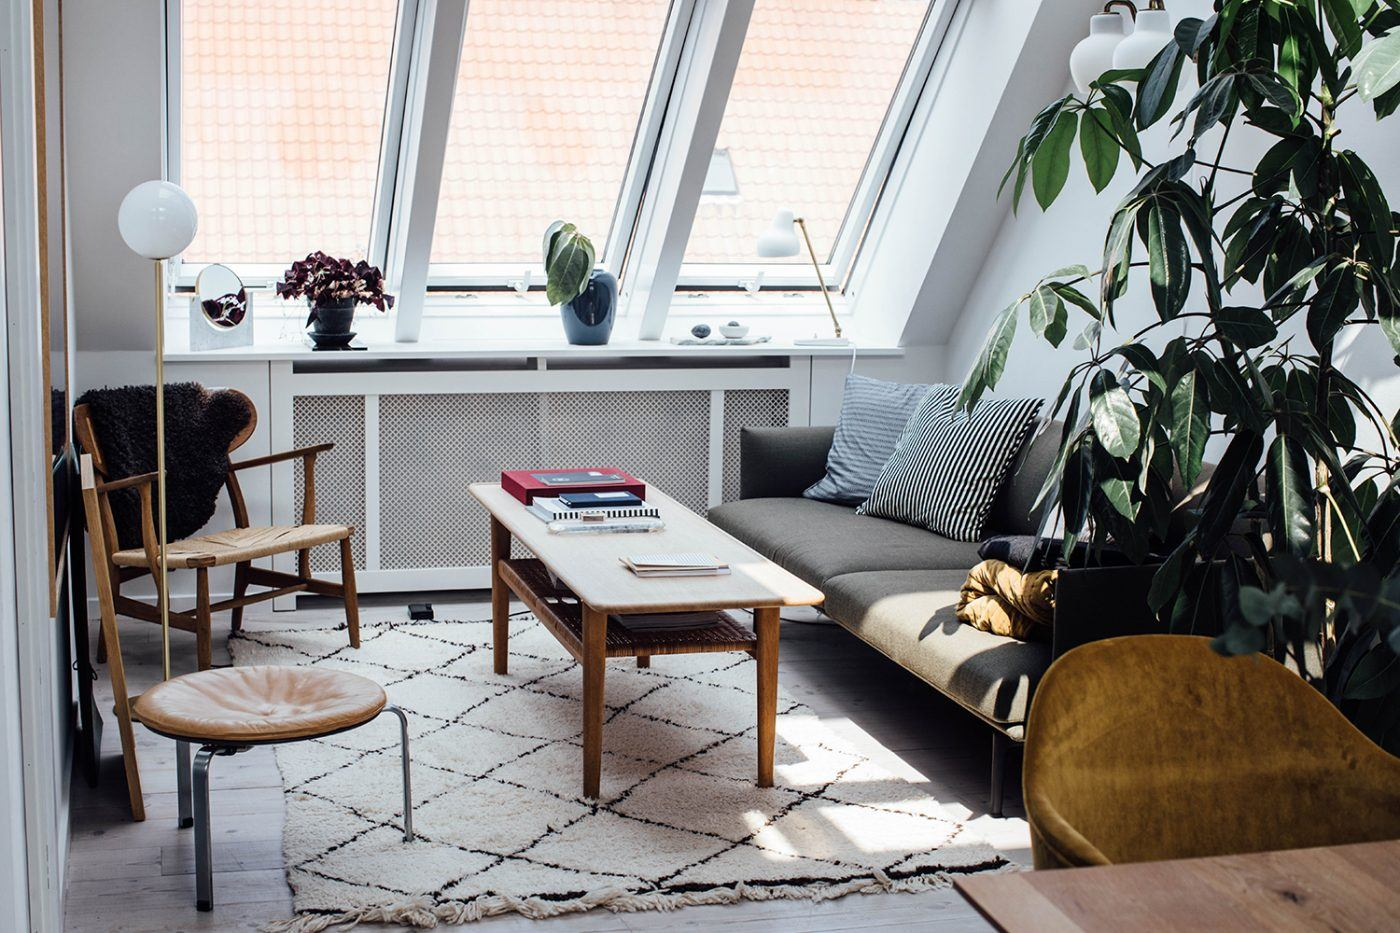 Image for Home Tour with Line Borella in Copenhagen